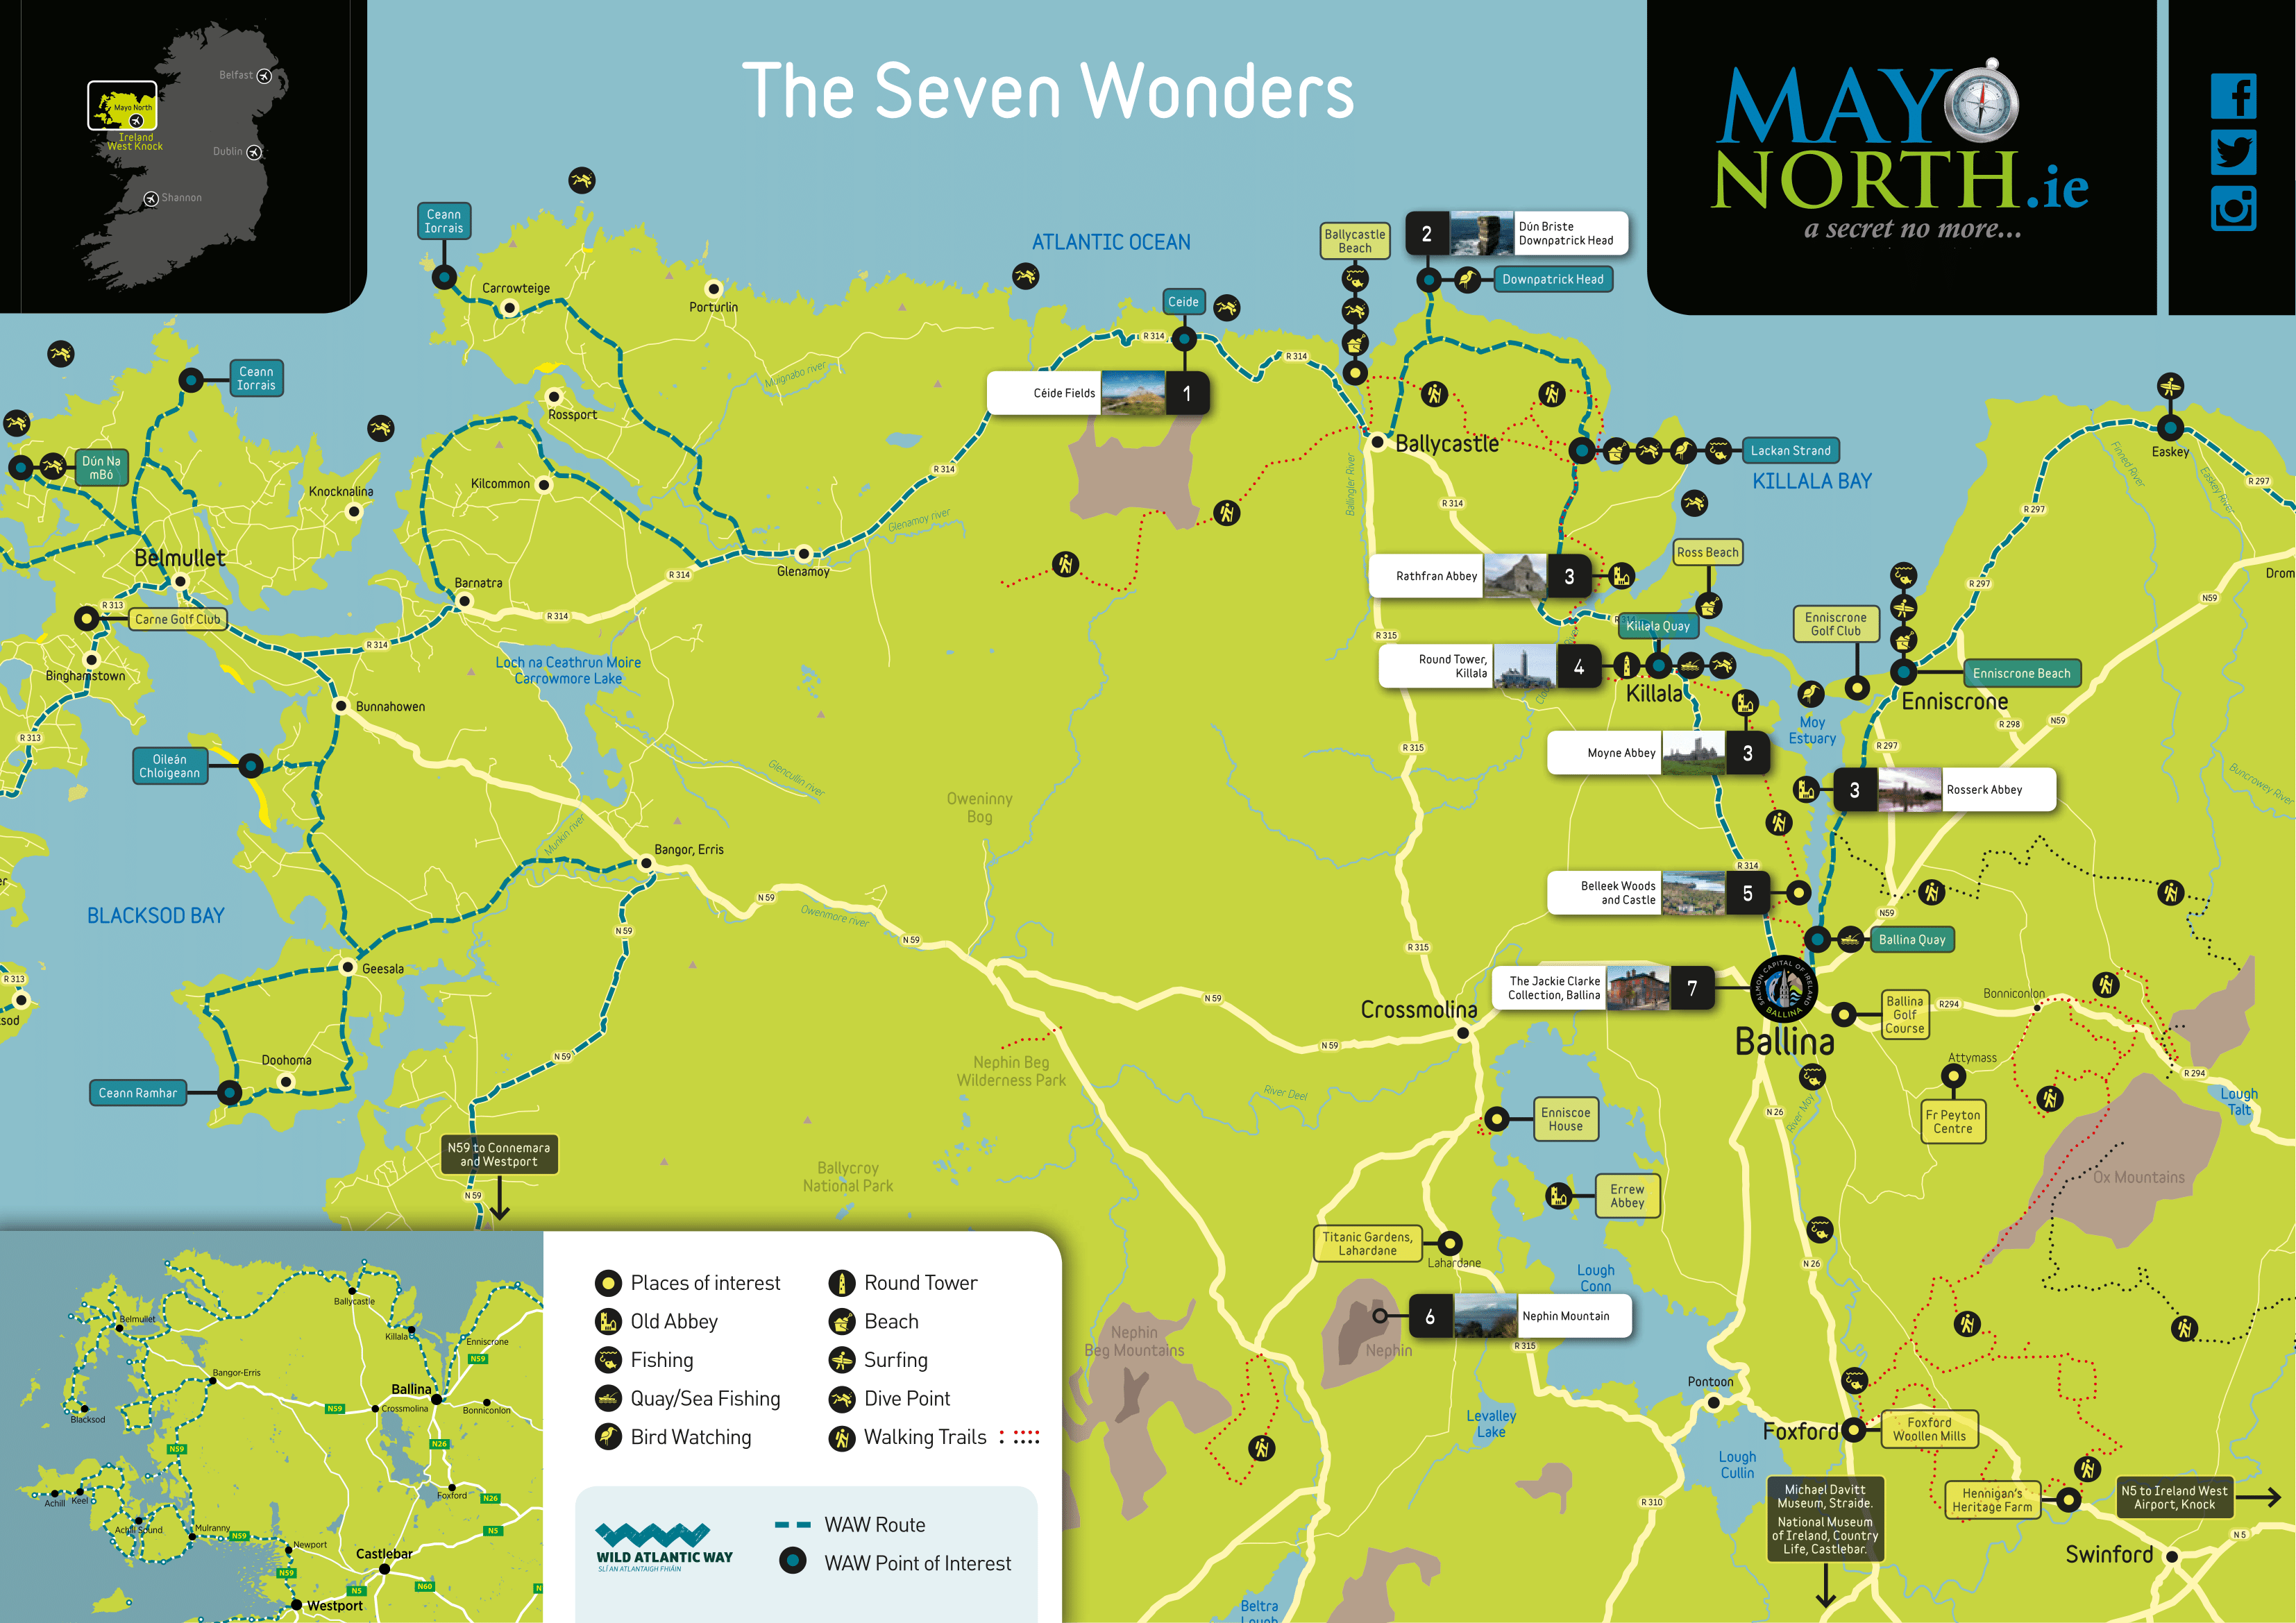 Seven Wonders of Mayo North map